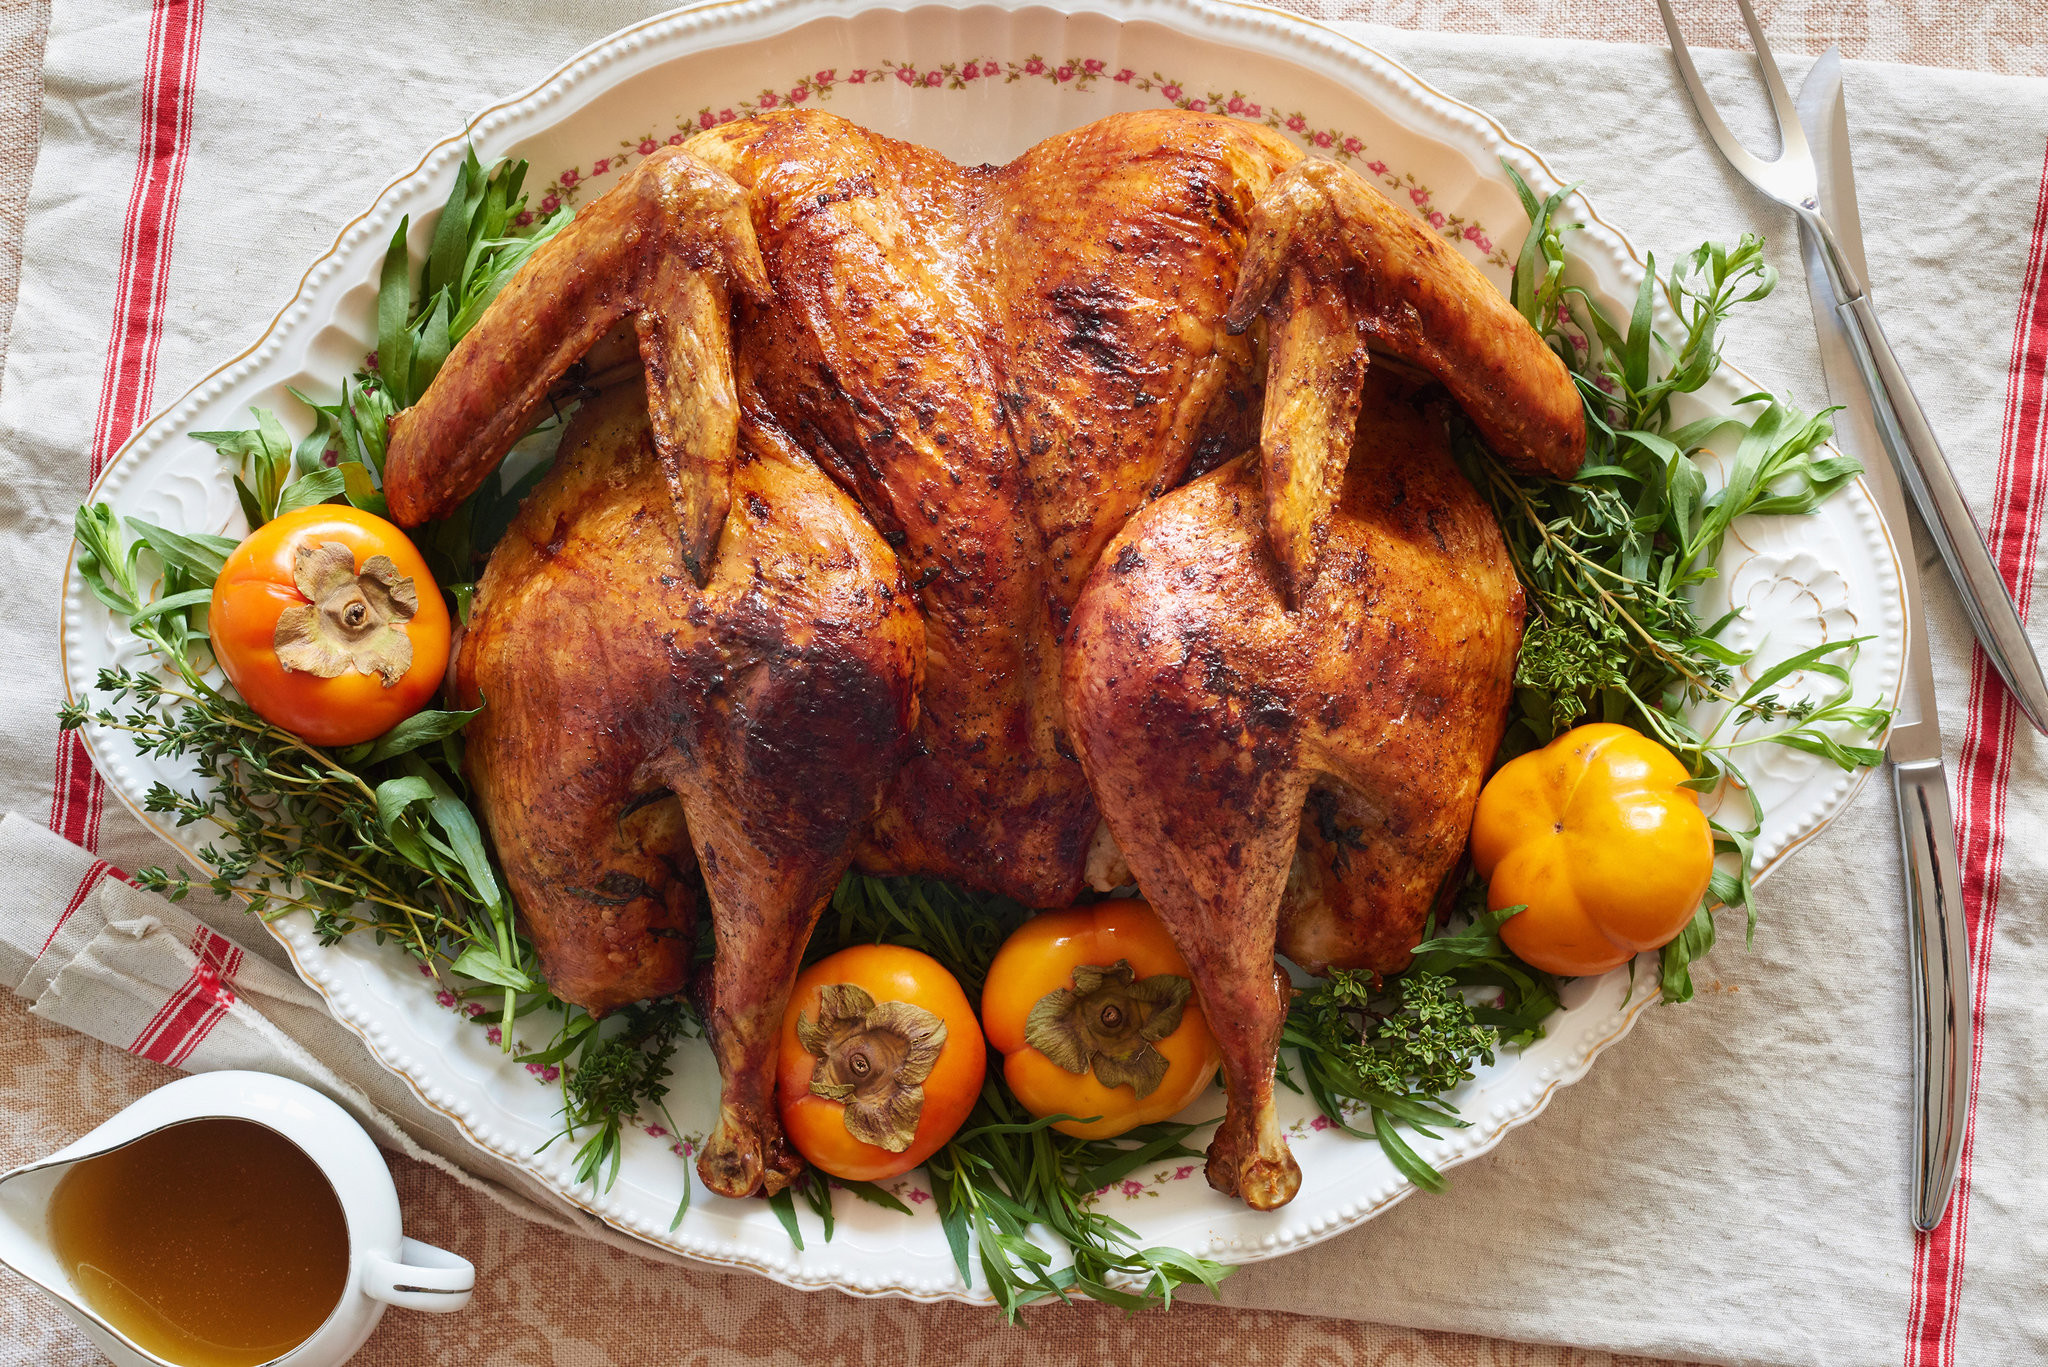 Roasted Turkey Recipes Thanksgiving  45 Minute Roast Turkey Recipe NYT Cooking